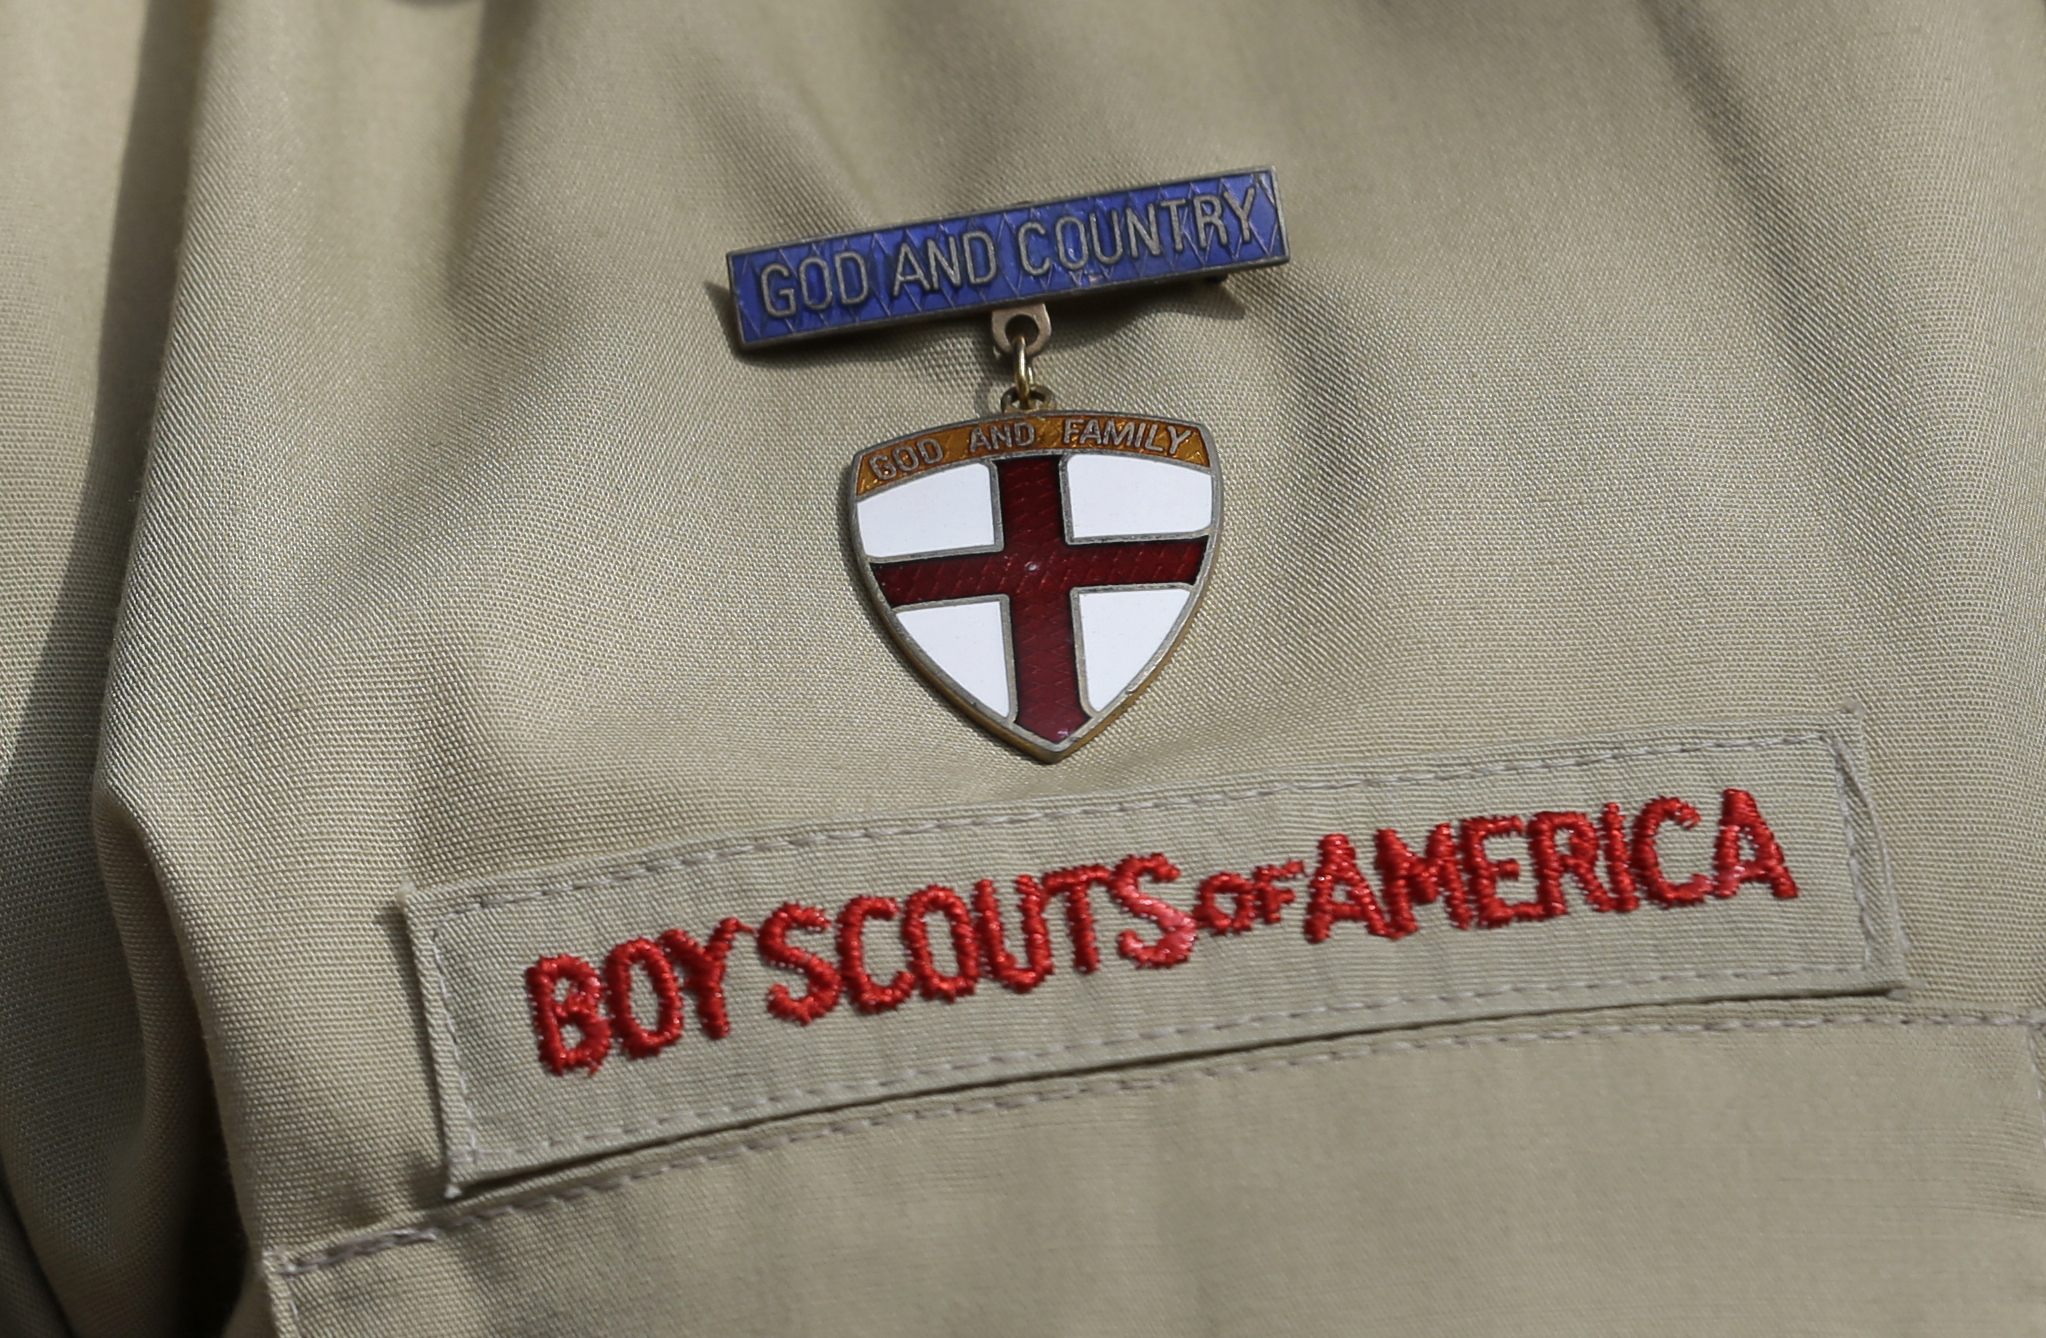 Effective Dec. 31, 2019, The Church of Jesus Christ of Latter-day Saints will end its relationship with Boy Scouts of America.